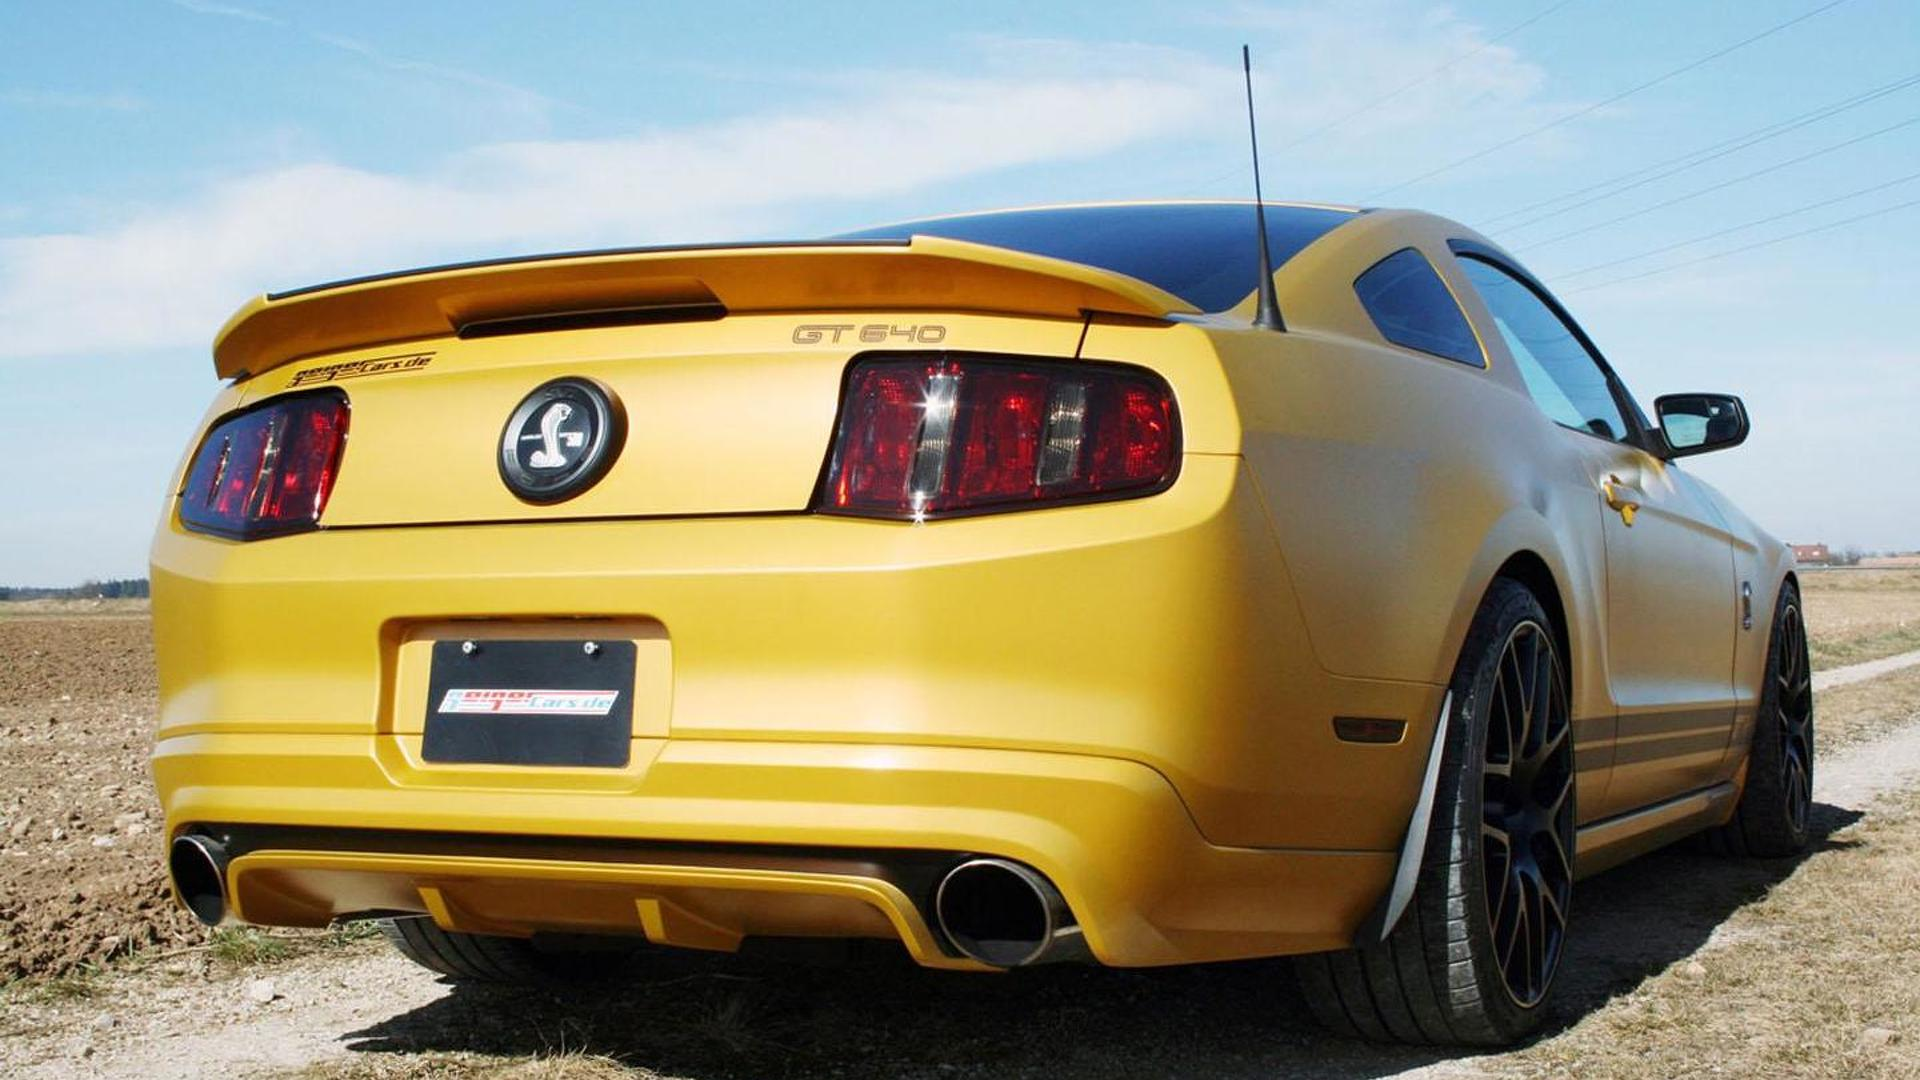 Ford Mustang Shelby GT640 Golden Snake by GeigerCars